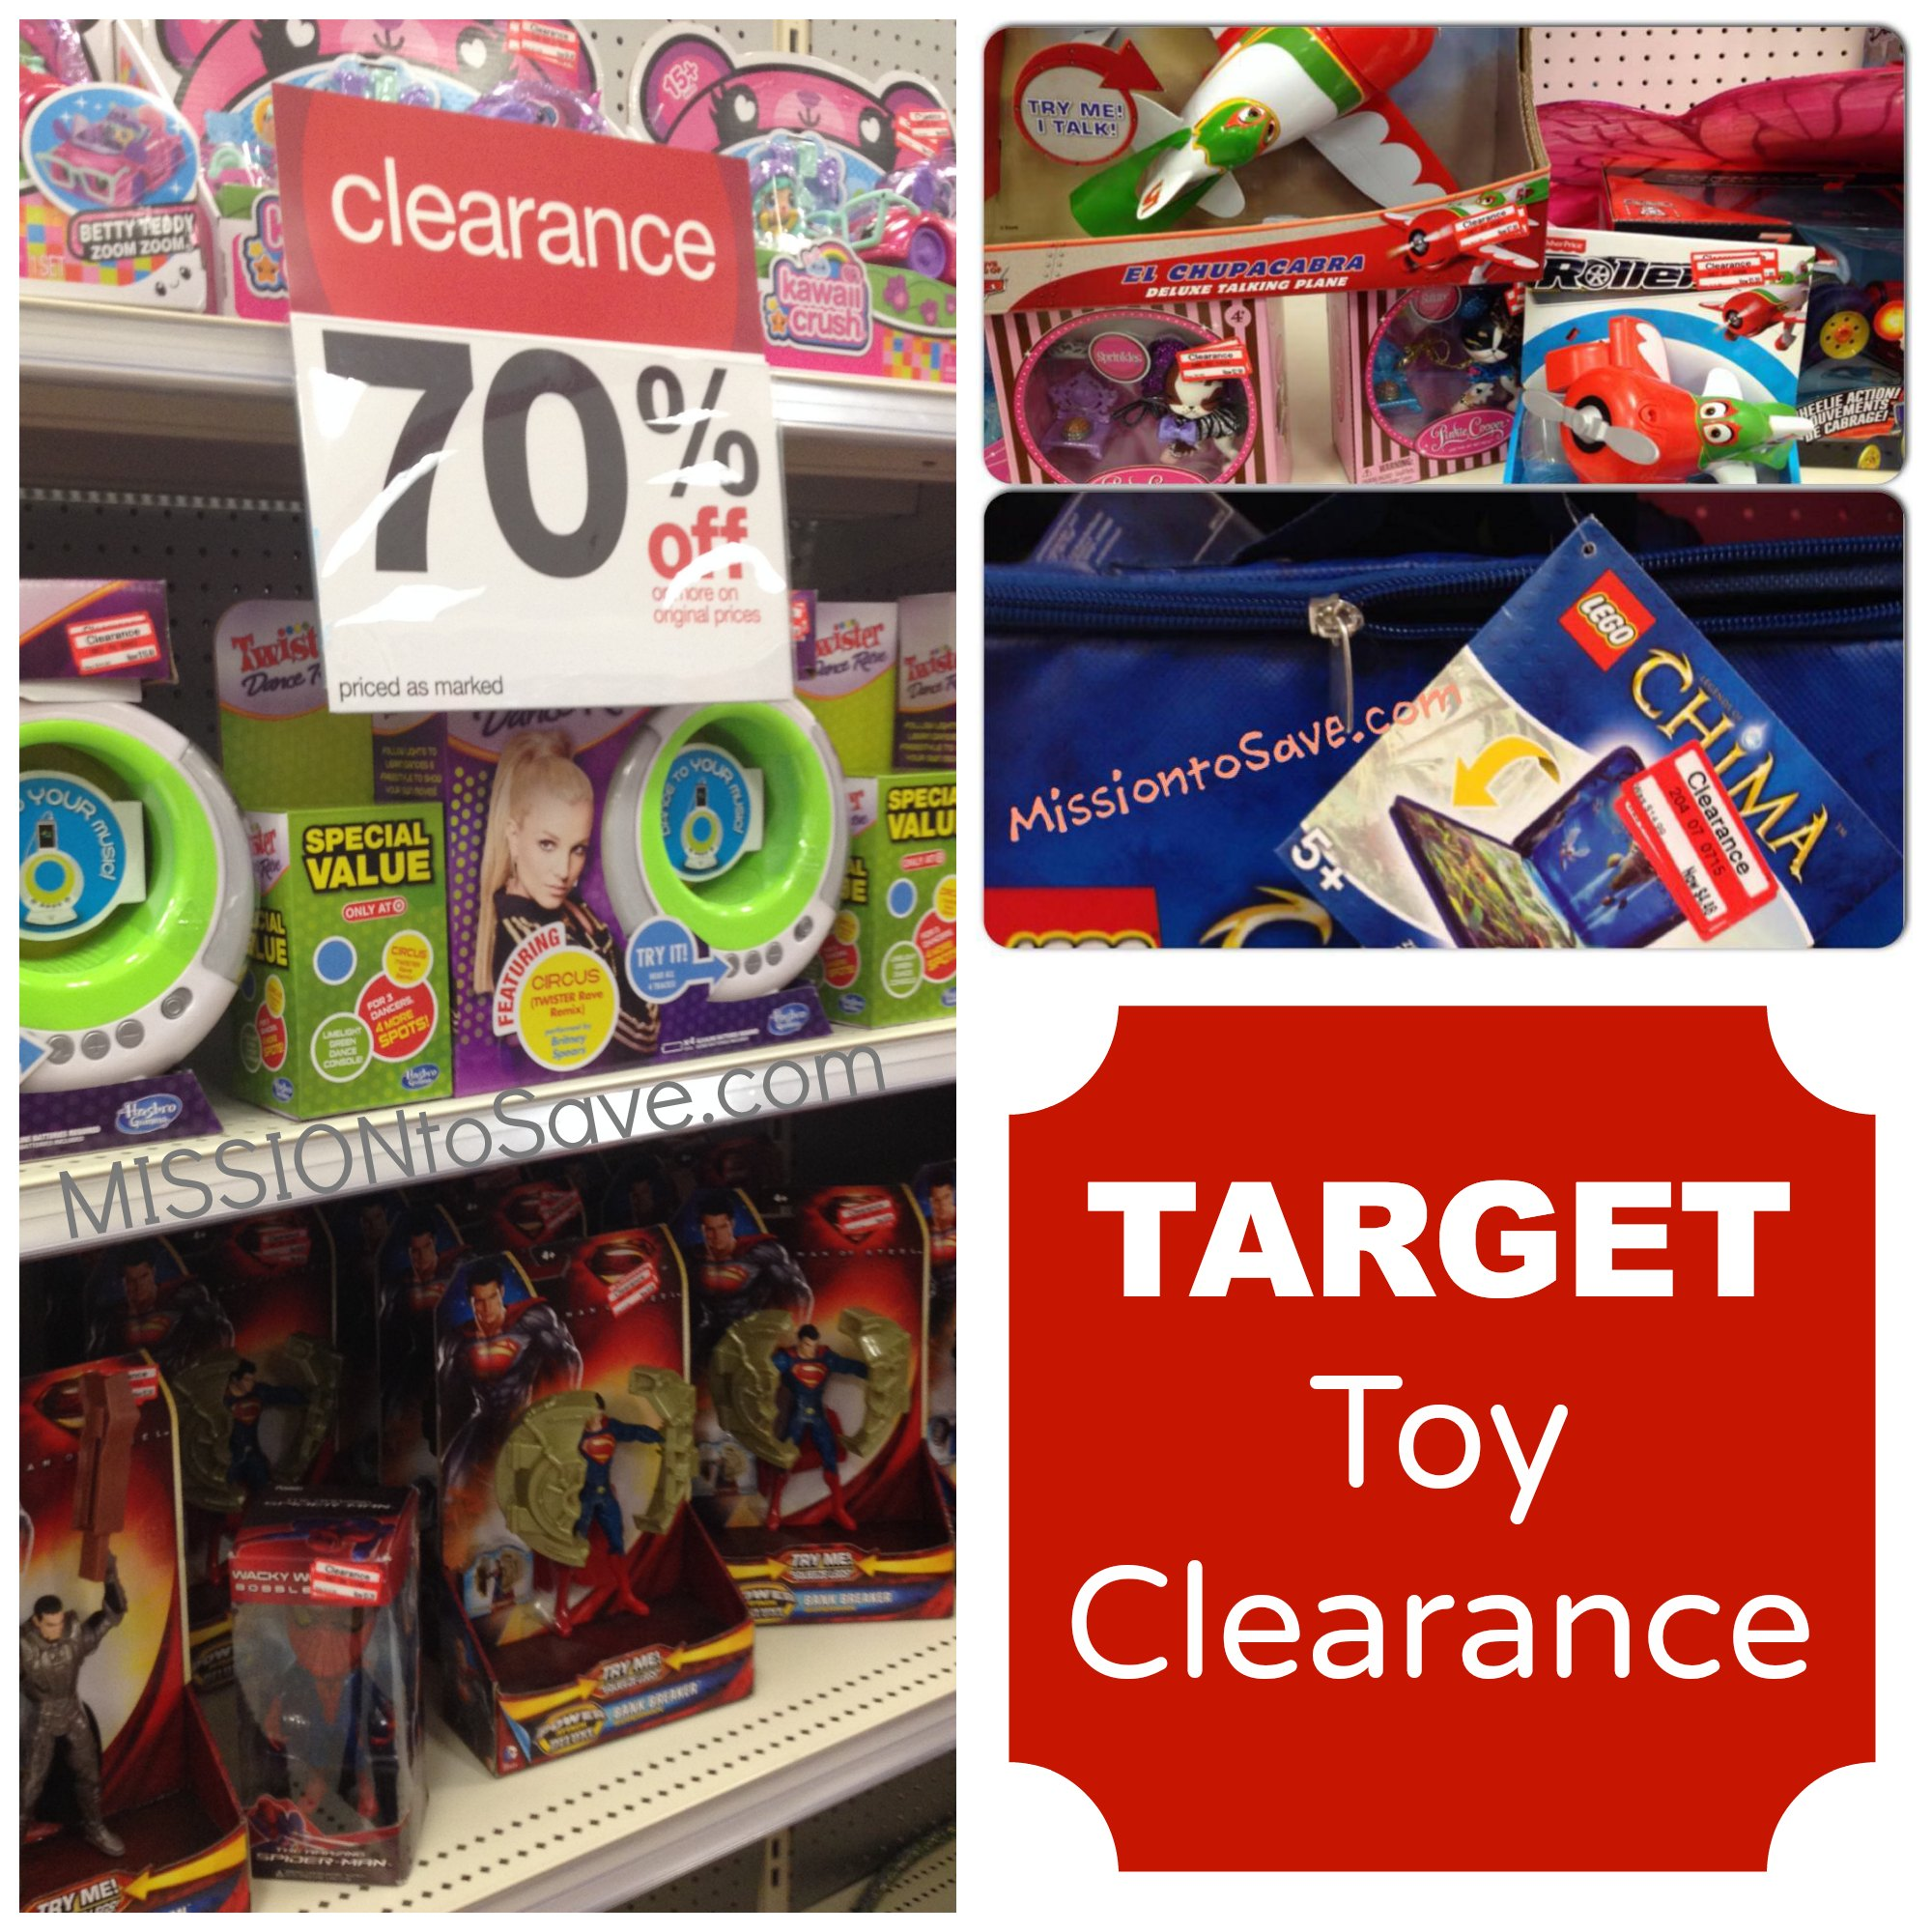 Target Toy Clearance 50 70 Off Time To Stock Up Quot Gift Closet Quot Mission To Save